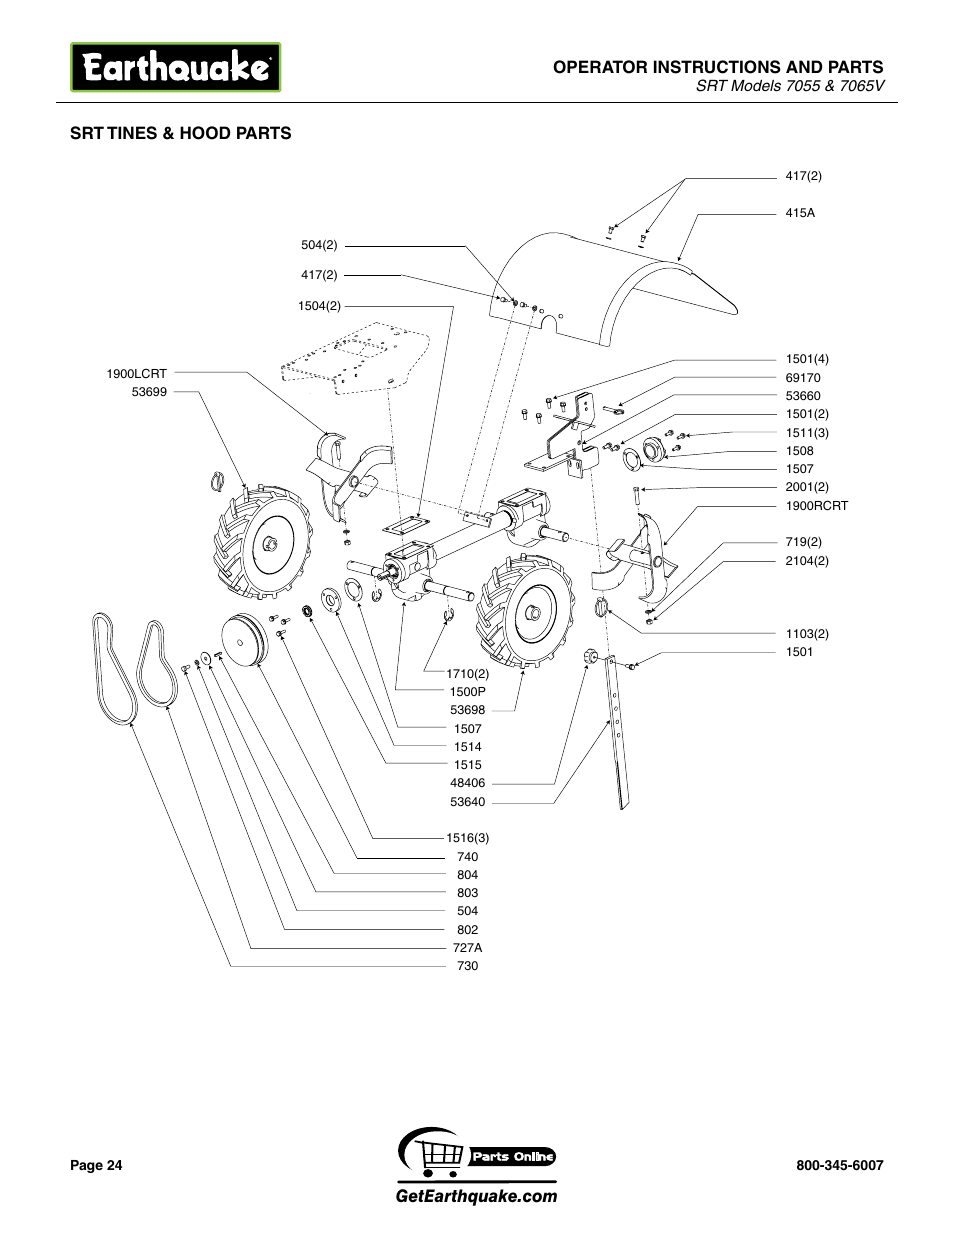 Operator instructions and parts, Srt tines & hood parts